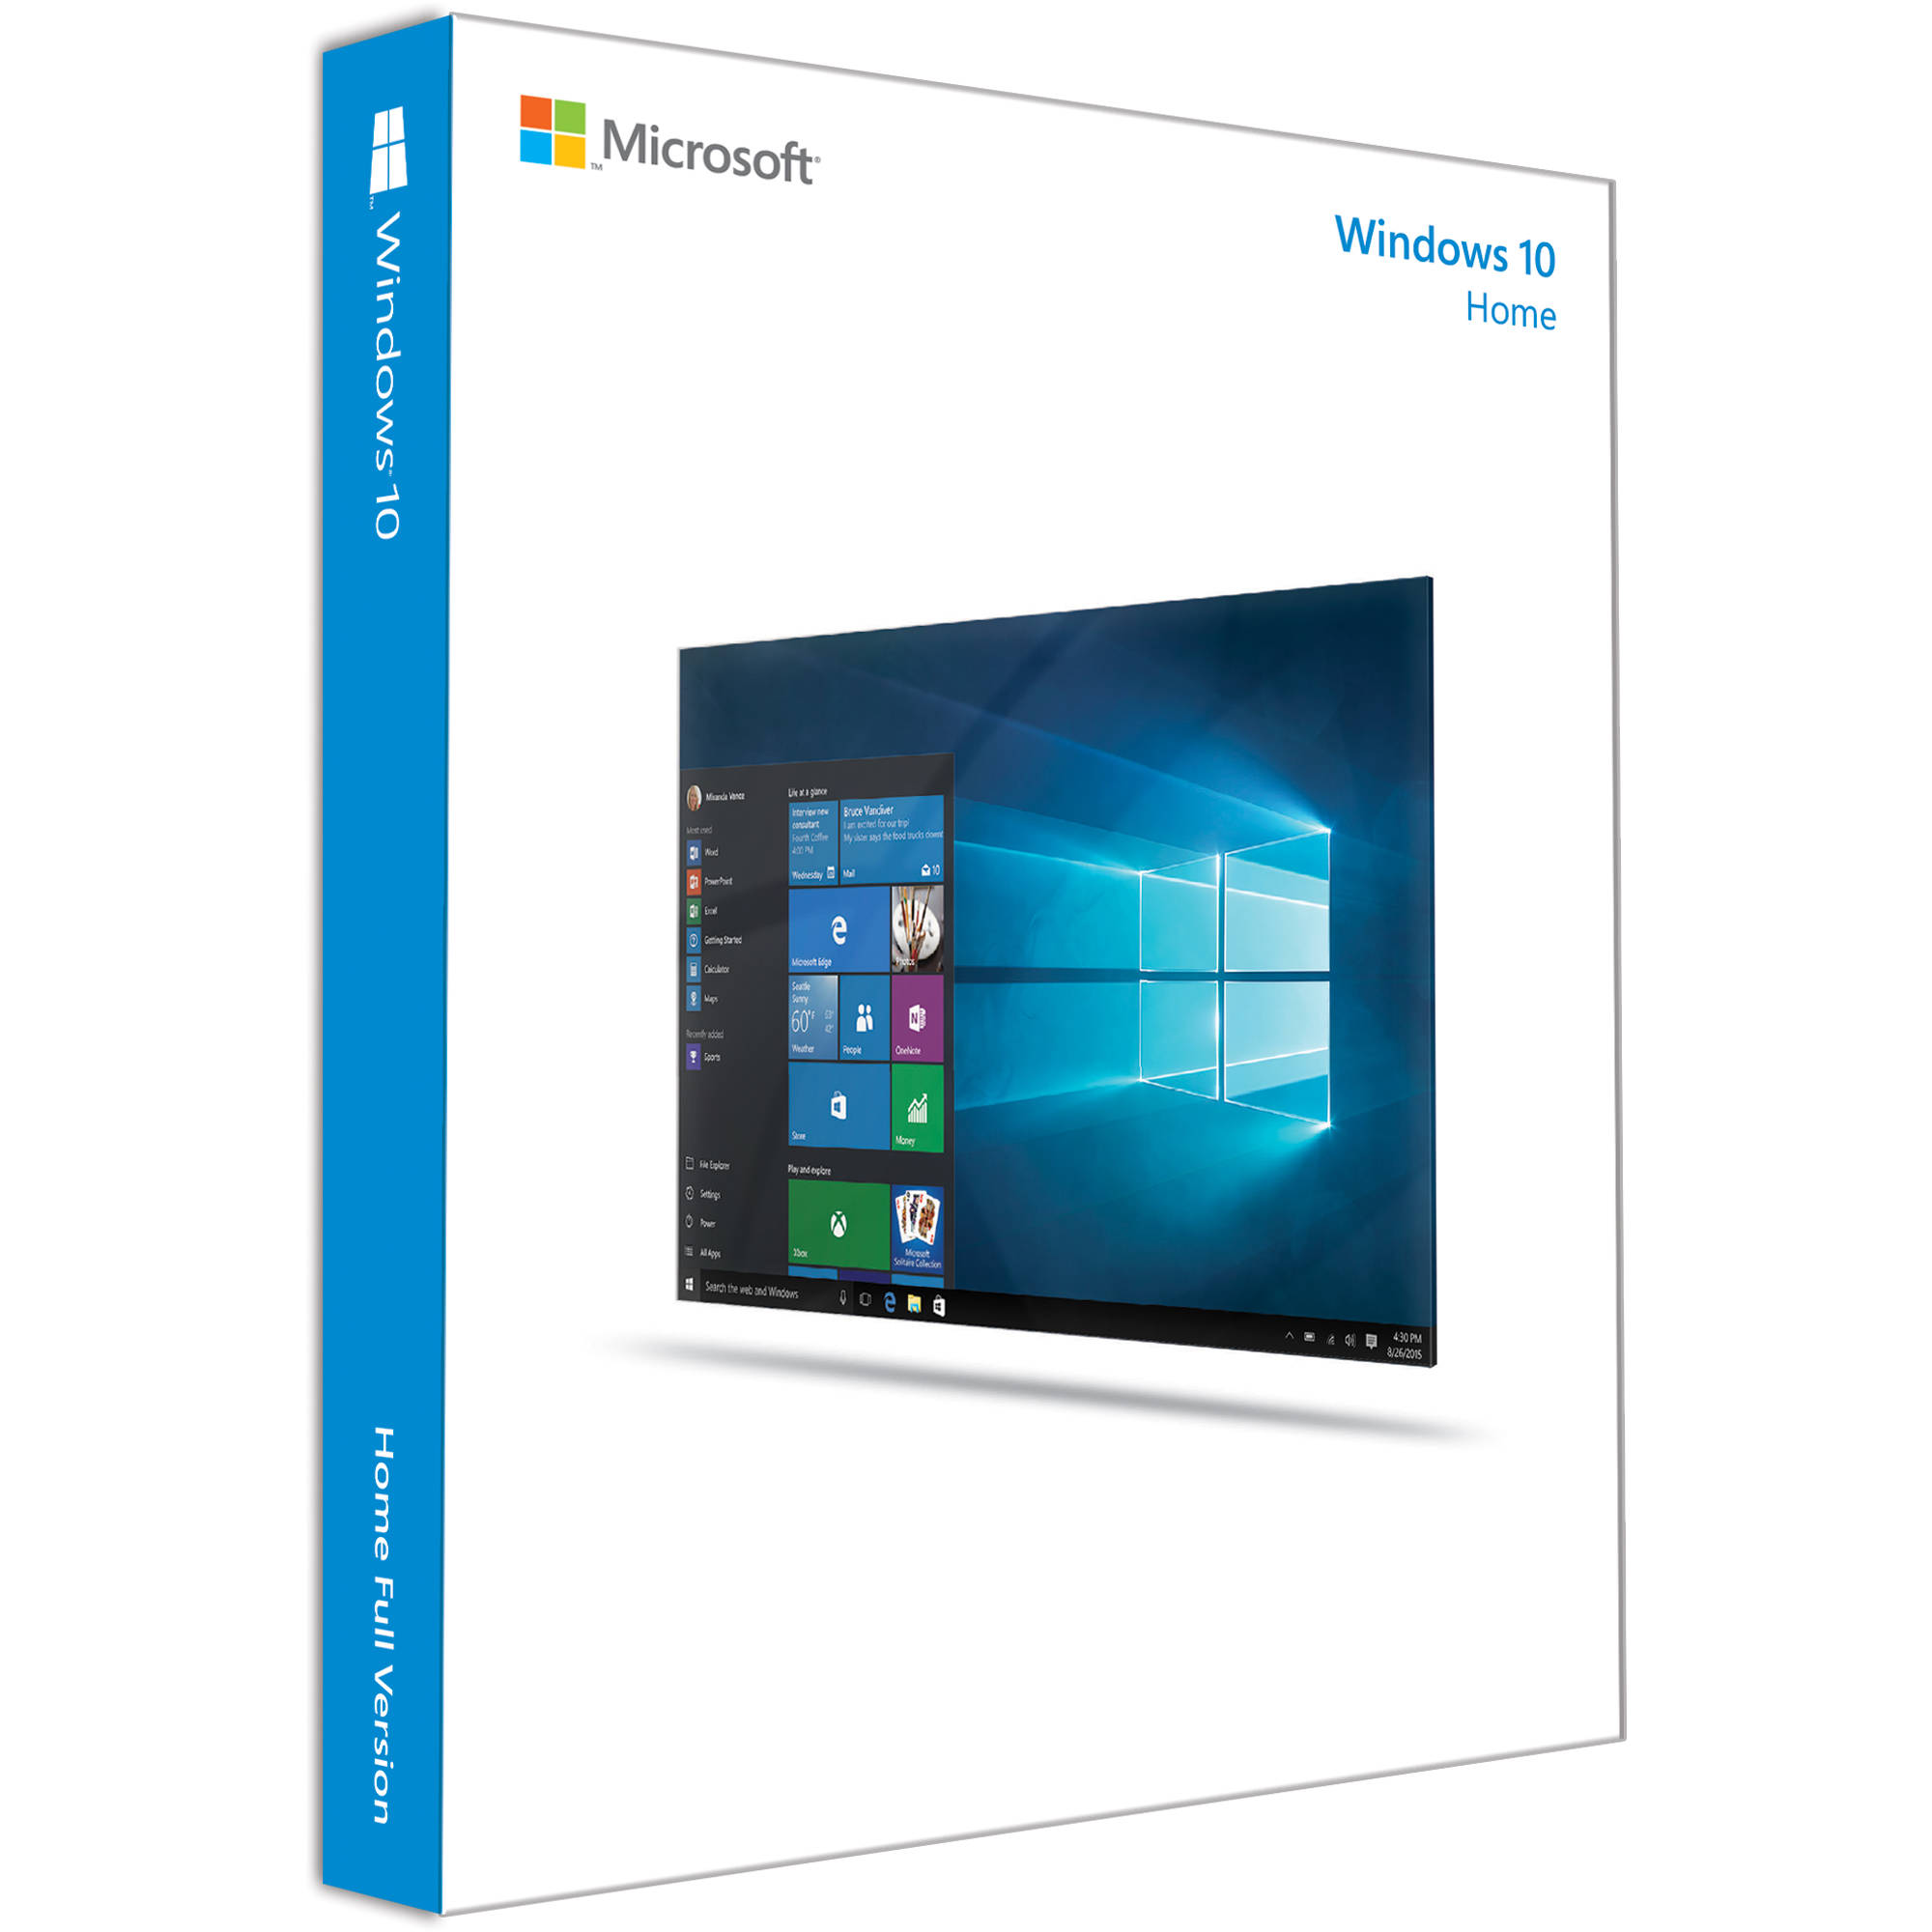 Microsoft windows 10 home kw9 00186 b h photo video for Microsoft win10